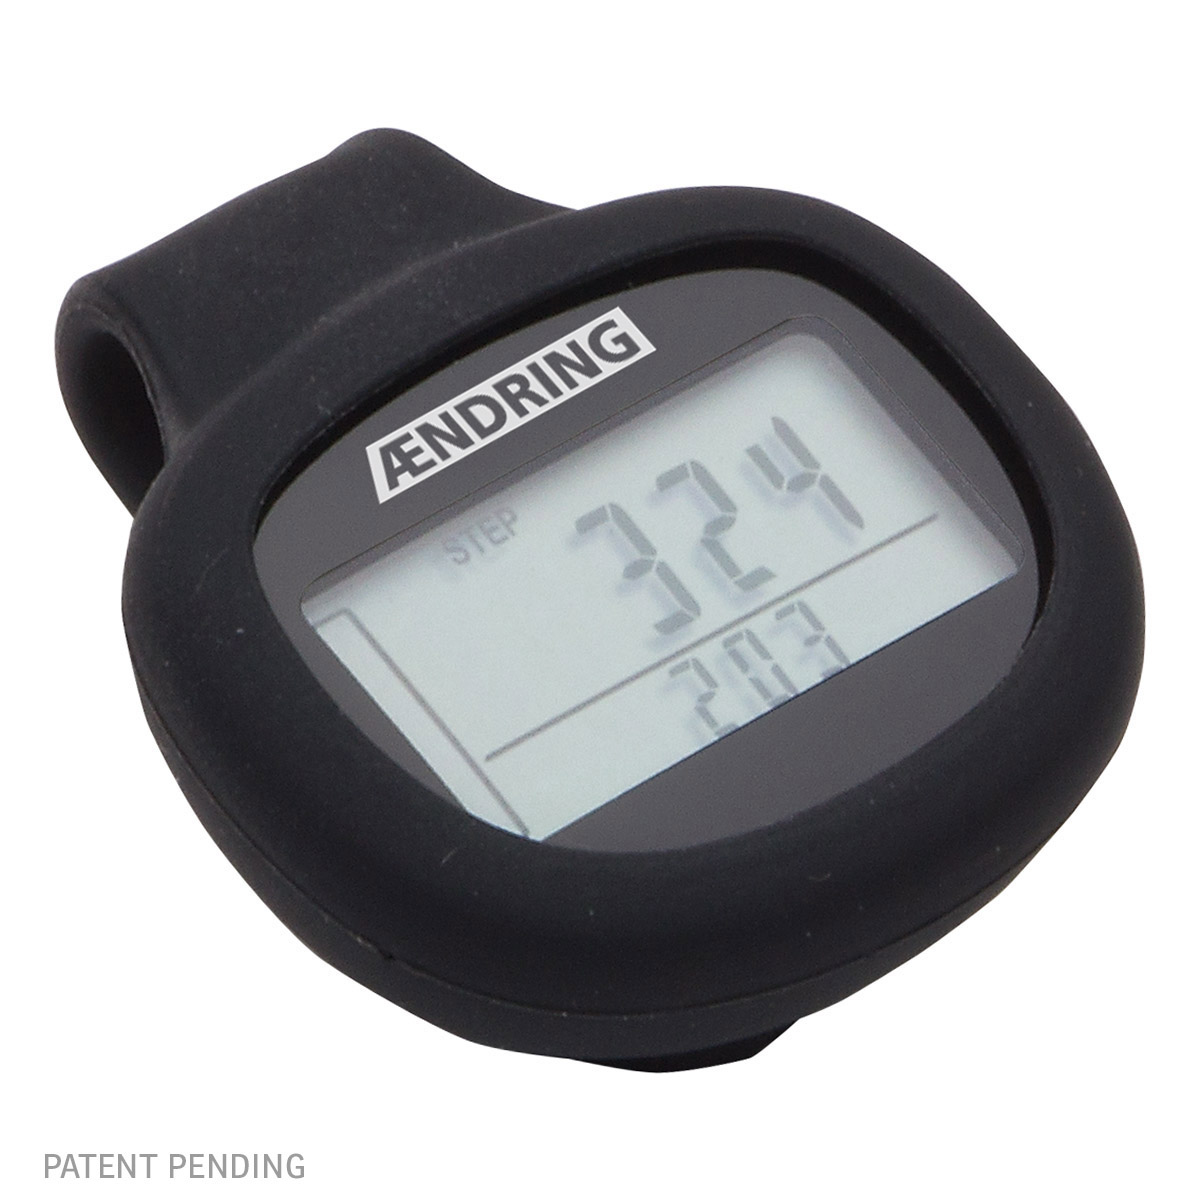 Show Or Stow 3D Pedometer, WHF-SW15 - 1 Colour Imprint